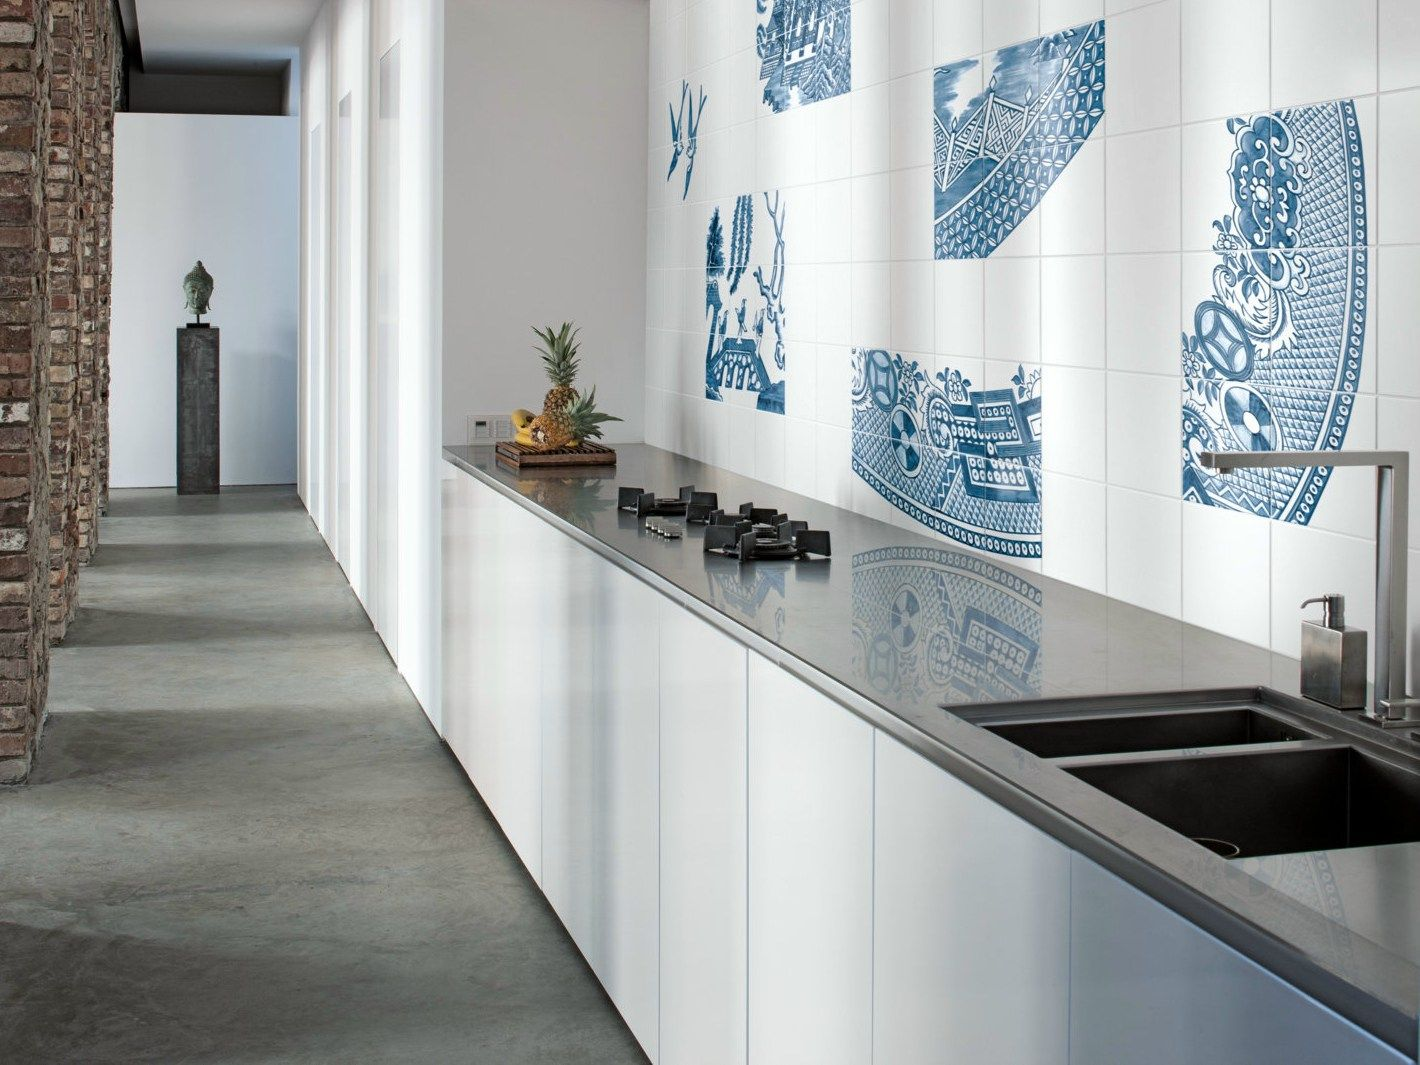 Double Fired Ceramic Wall Tiles BLUE WILLOW By Ceramica Bardelli Design  Robert Dawson